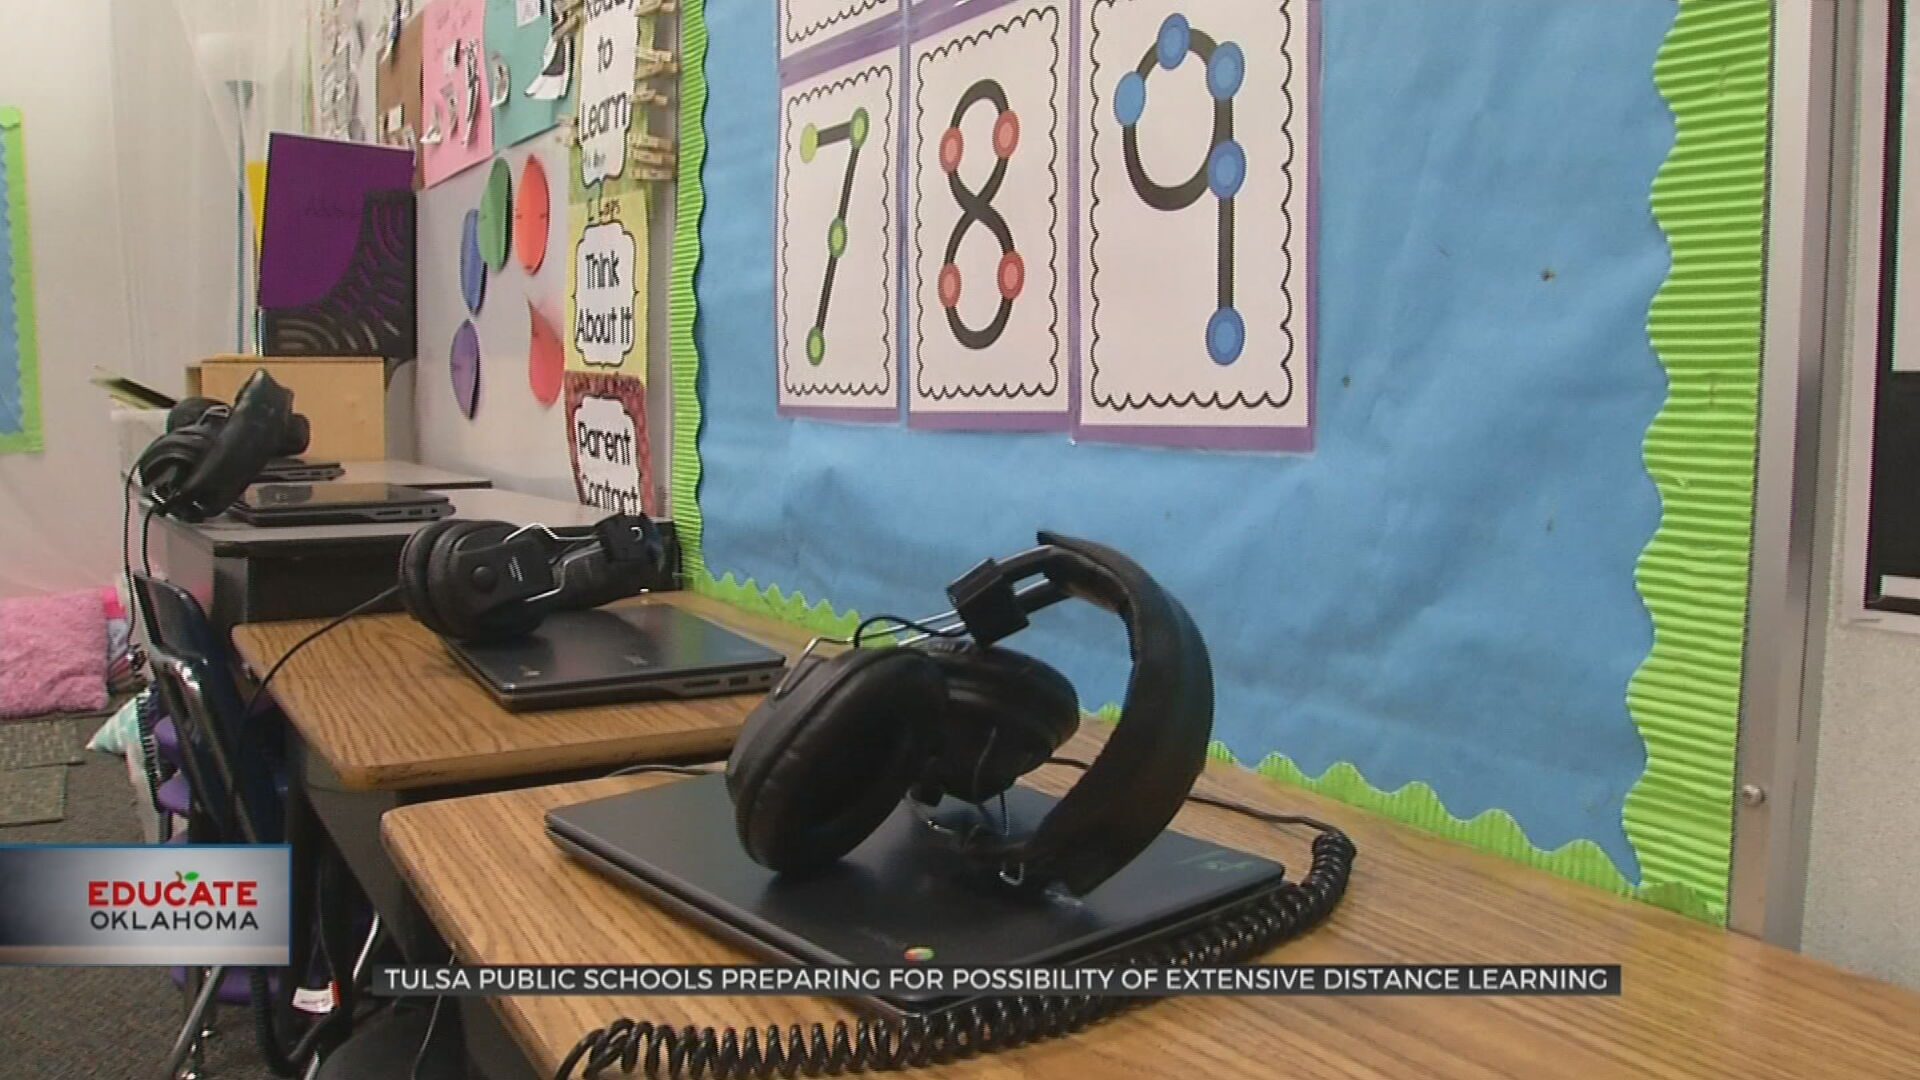 Tulsa Public Schools, Parents Prepare For Possibility Of Extensive Distance Learning